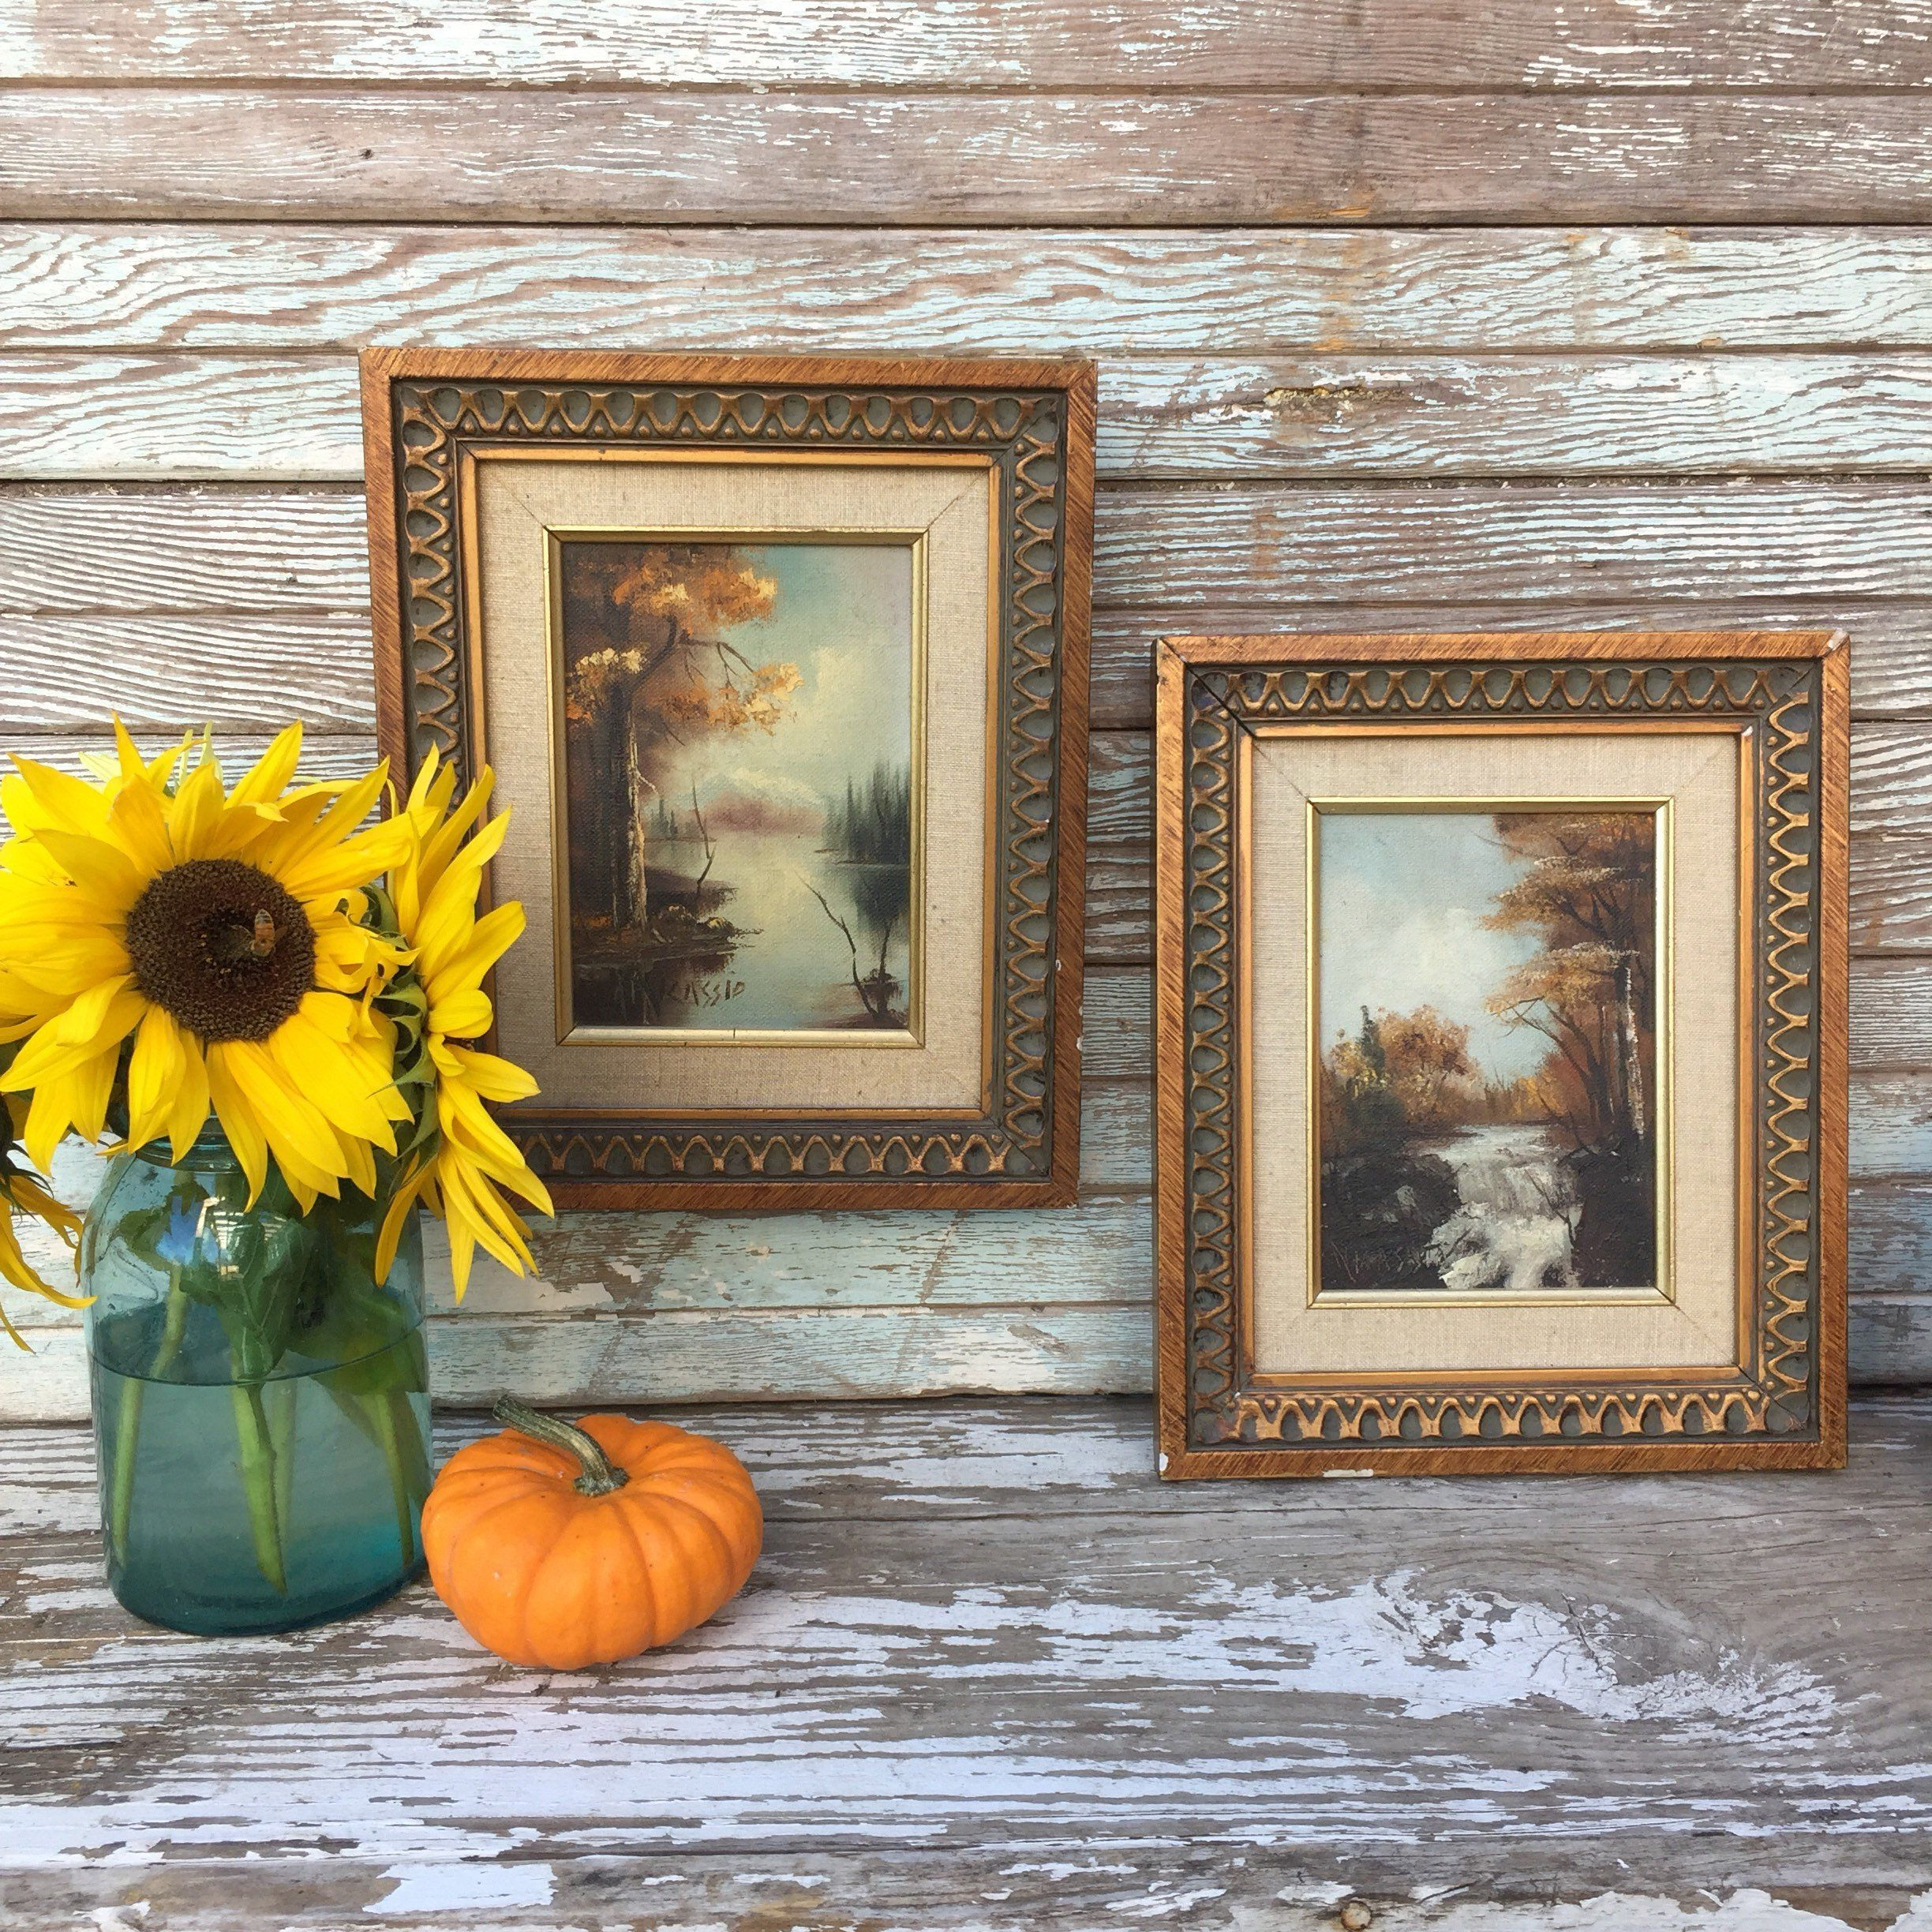 Two , vintage mid century paintings on canvas / vintage framed art / Beautiful fall scenery / Autumn on the river paintings #fallscenery